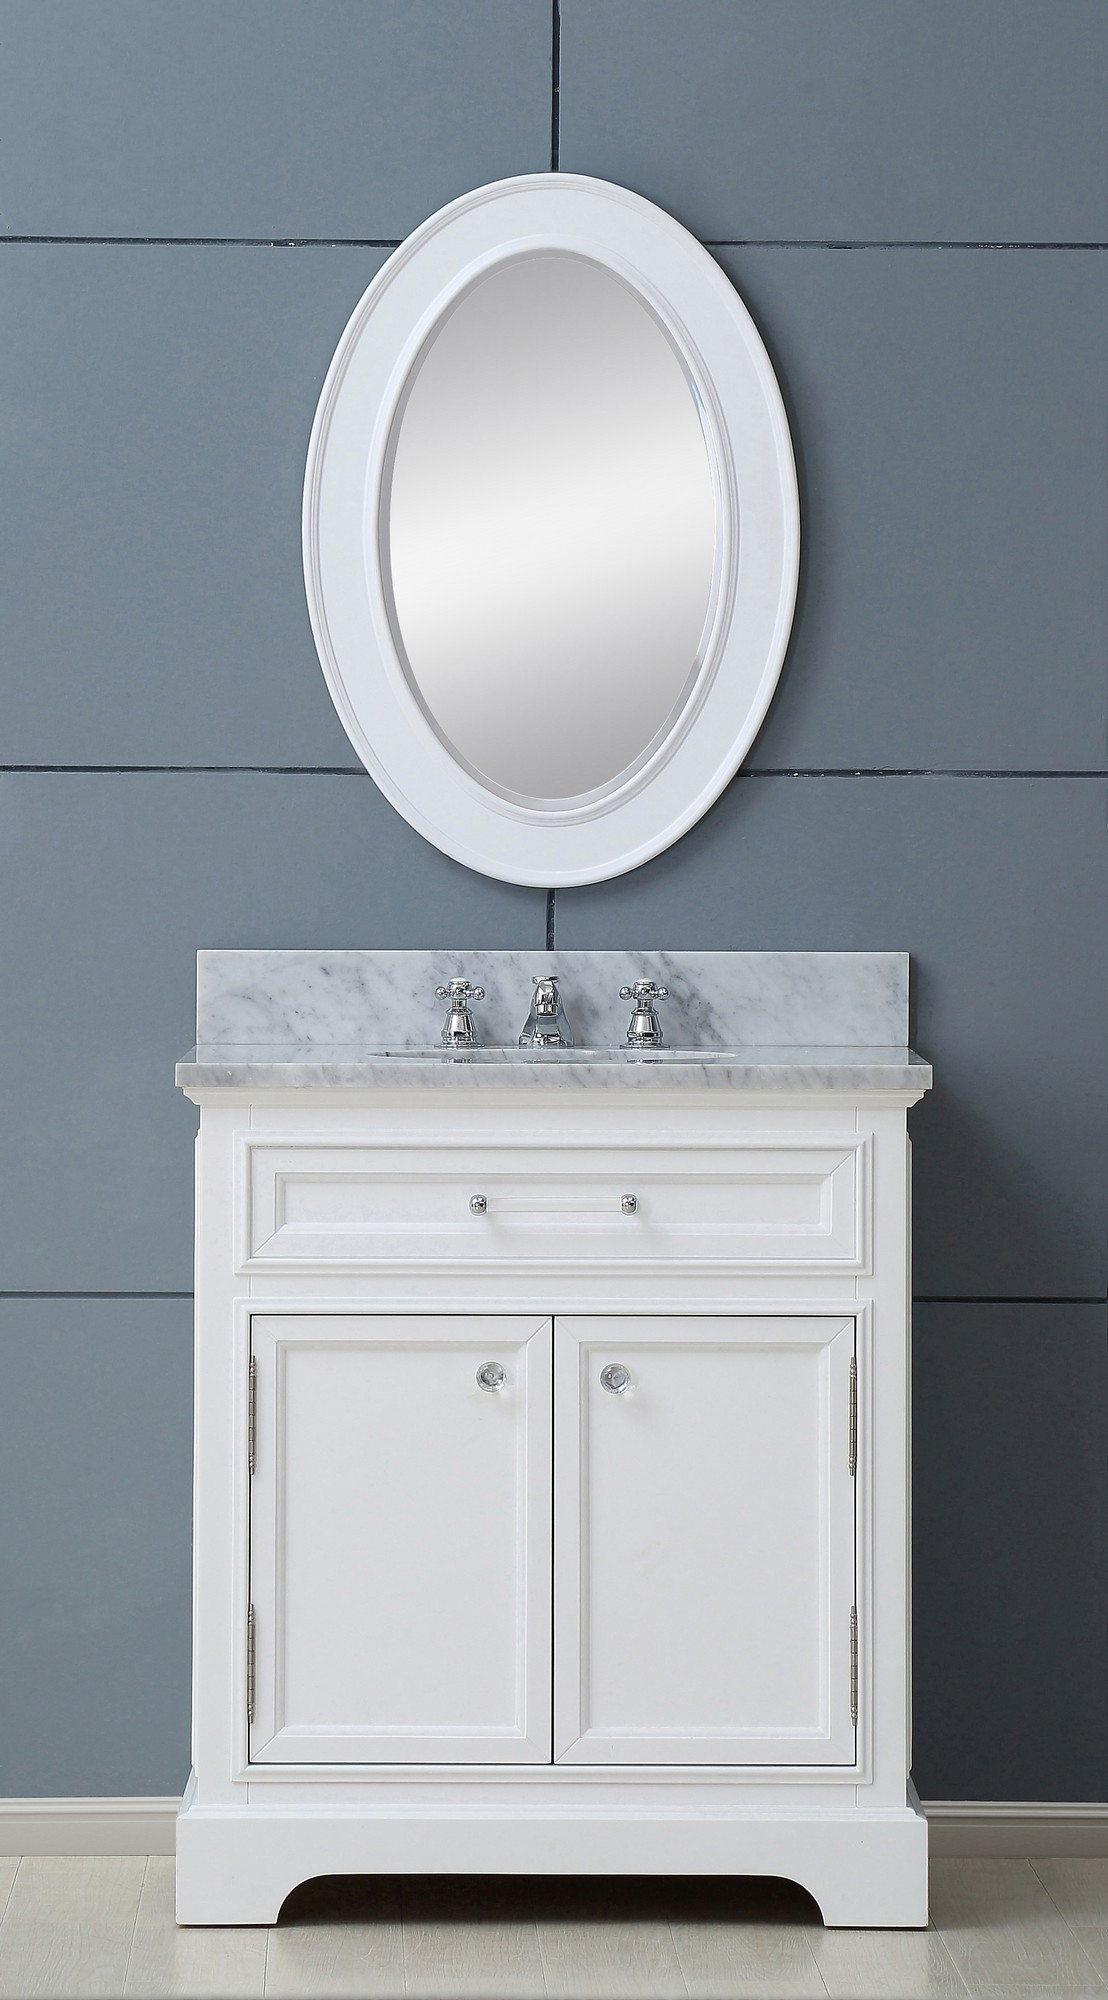 water creation derby 30wbf bath vanity with matching